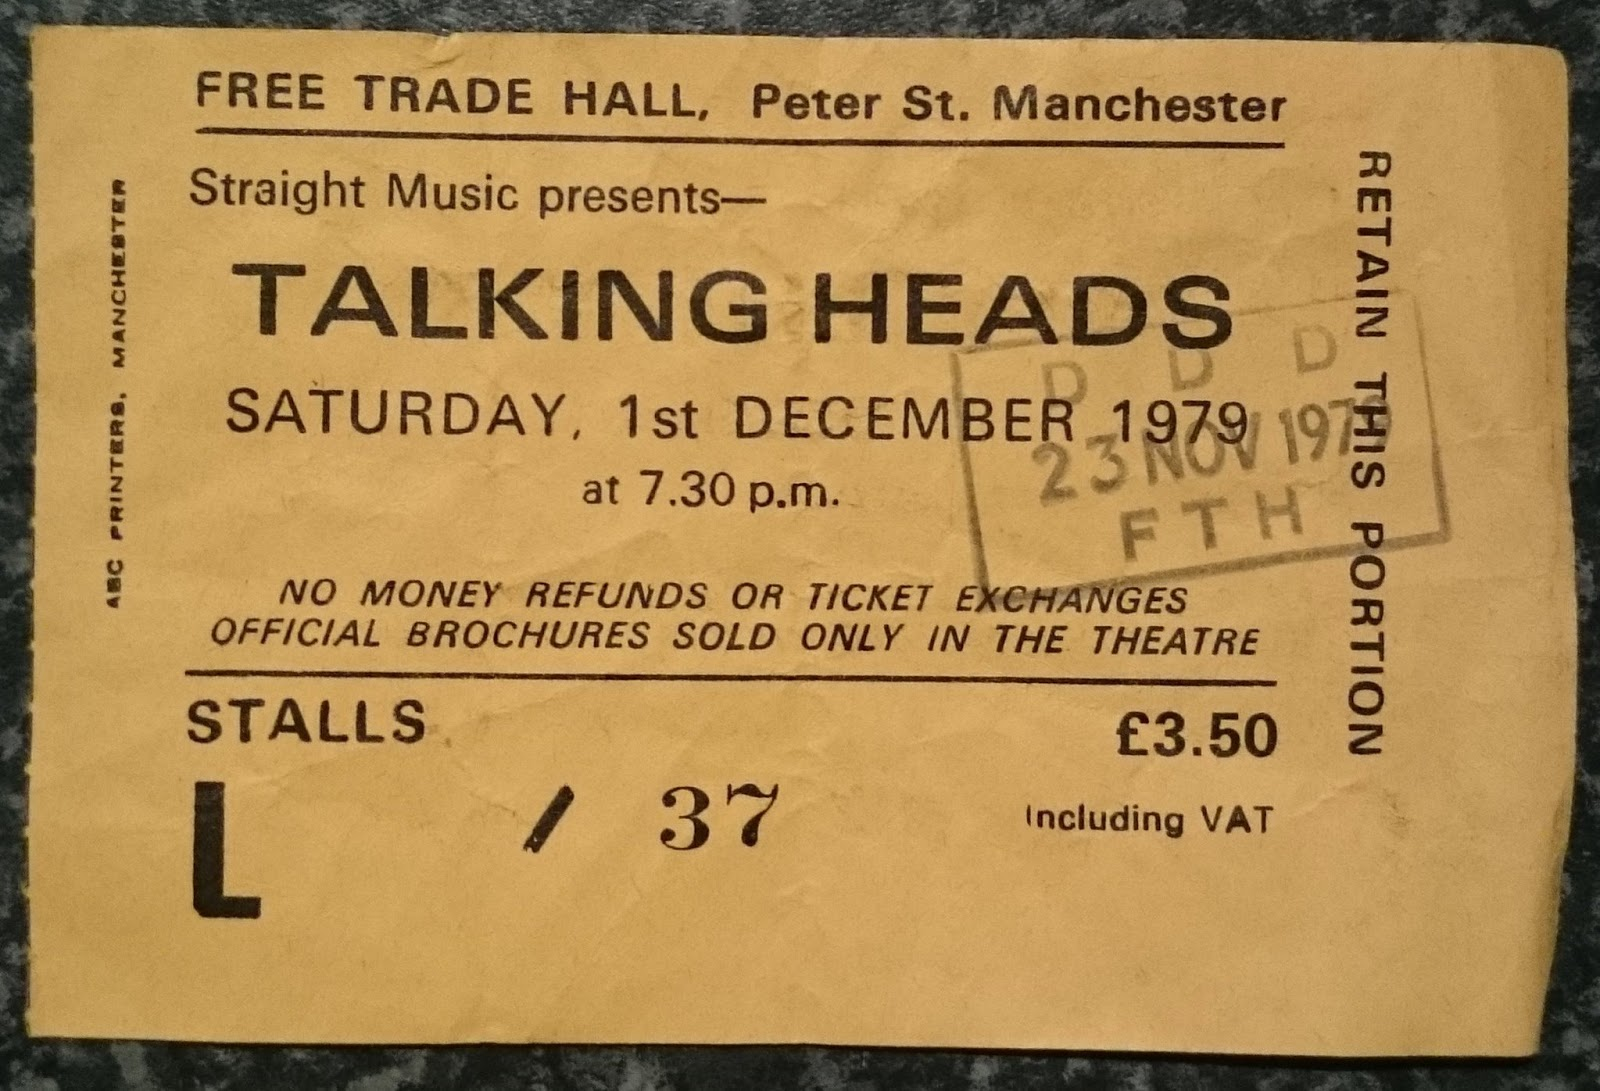 01 Dec 1979, Free Trade Hall, Manchester - ACR Gigography